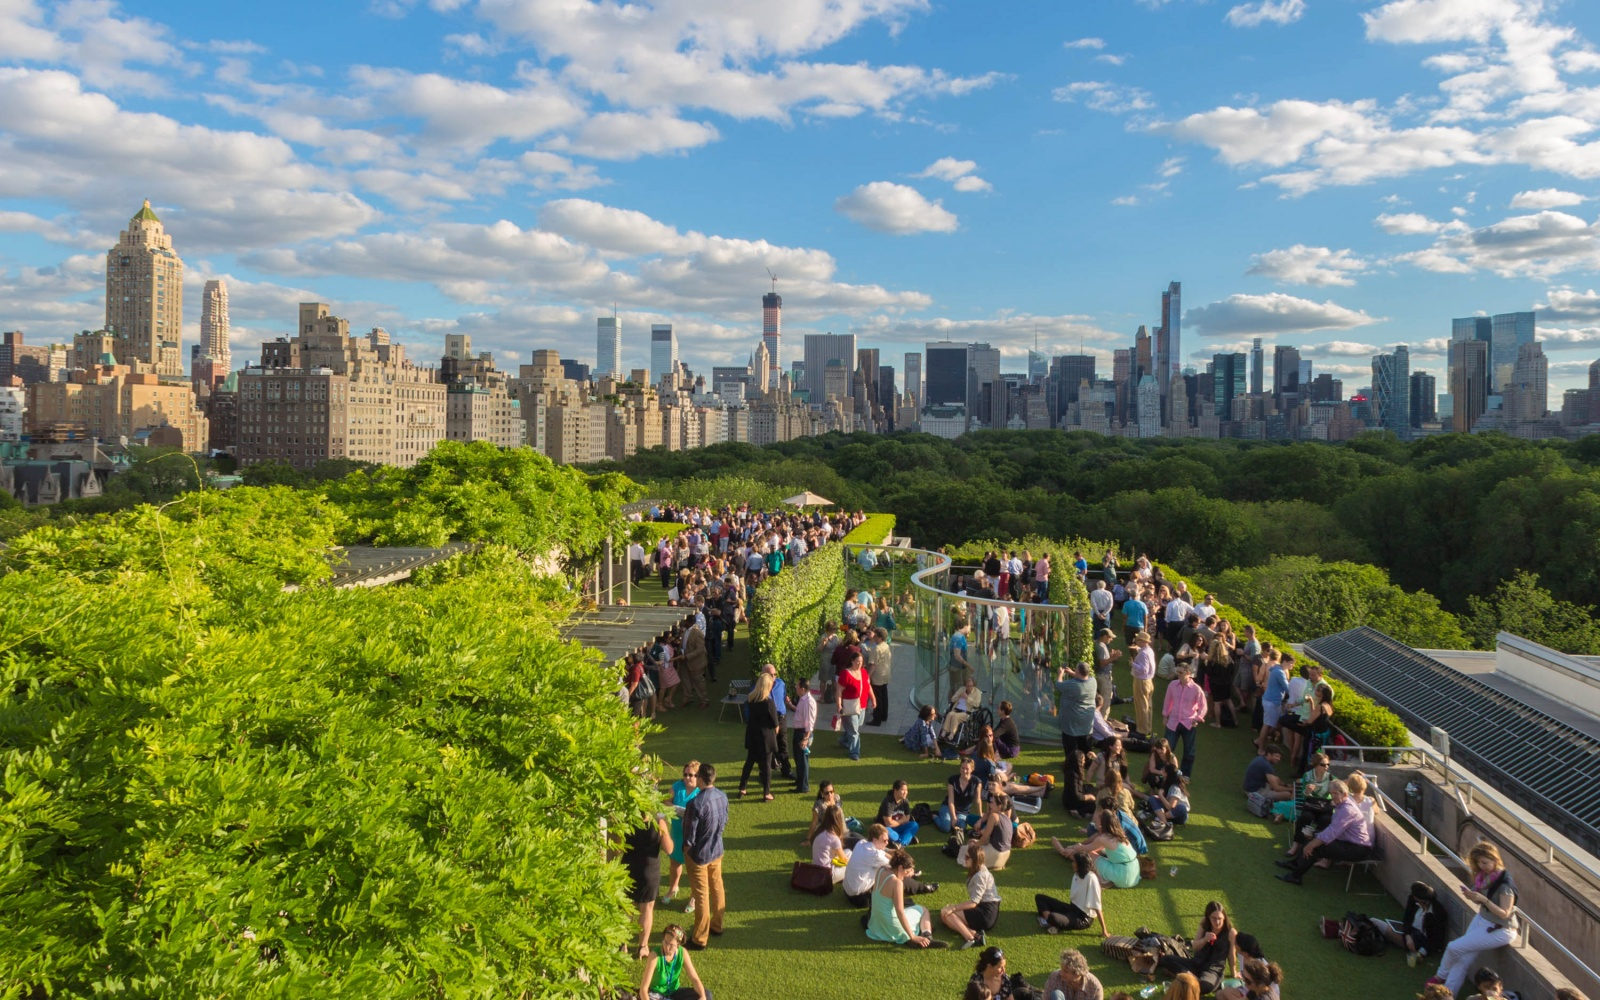 Rooftop-Garden-and-Martini-Café-at-the-Metropolitan-Museum-of-Art-the-welcome-blog